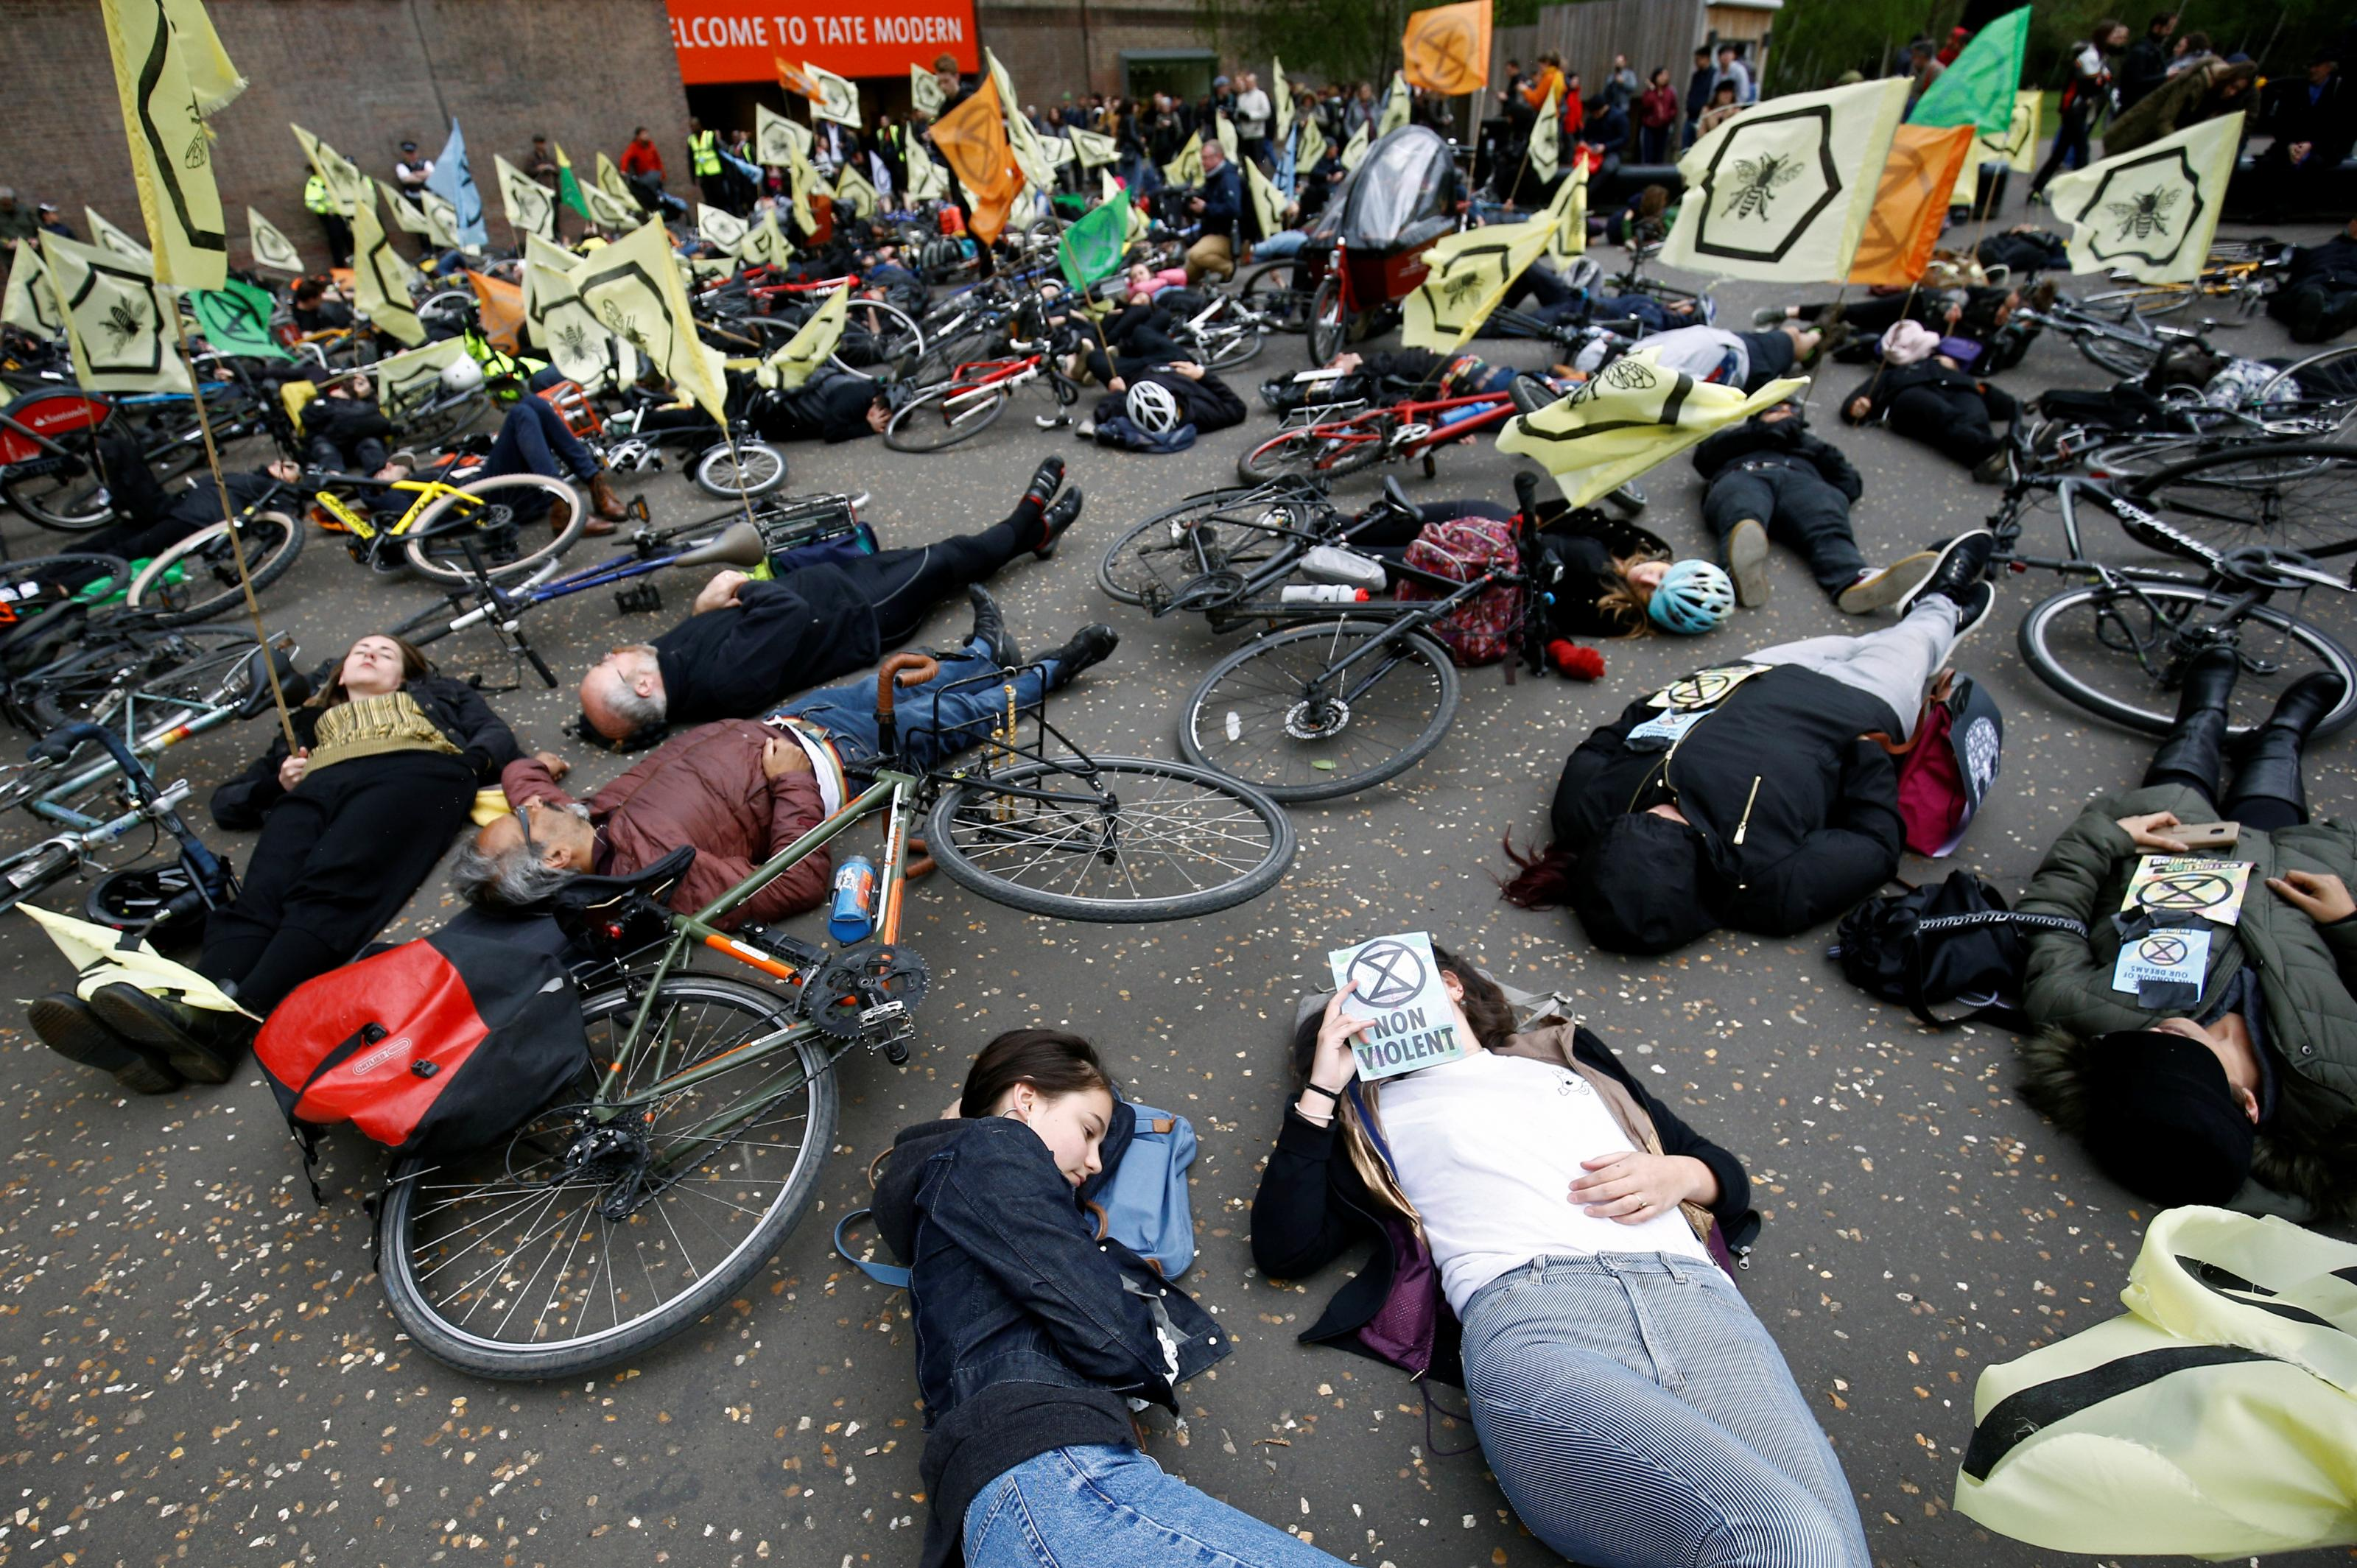 2019-04-27T151008Z_541231216_RC1F4740AF10_RTRMADP_3_BRITAIN-PROTESTS-CLIMATE-CHANGE.JPG